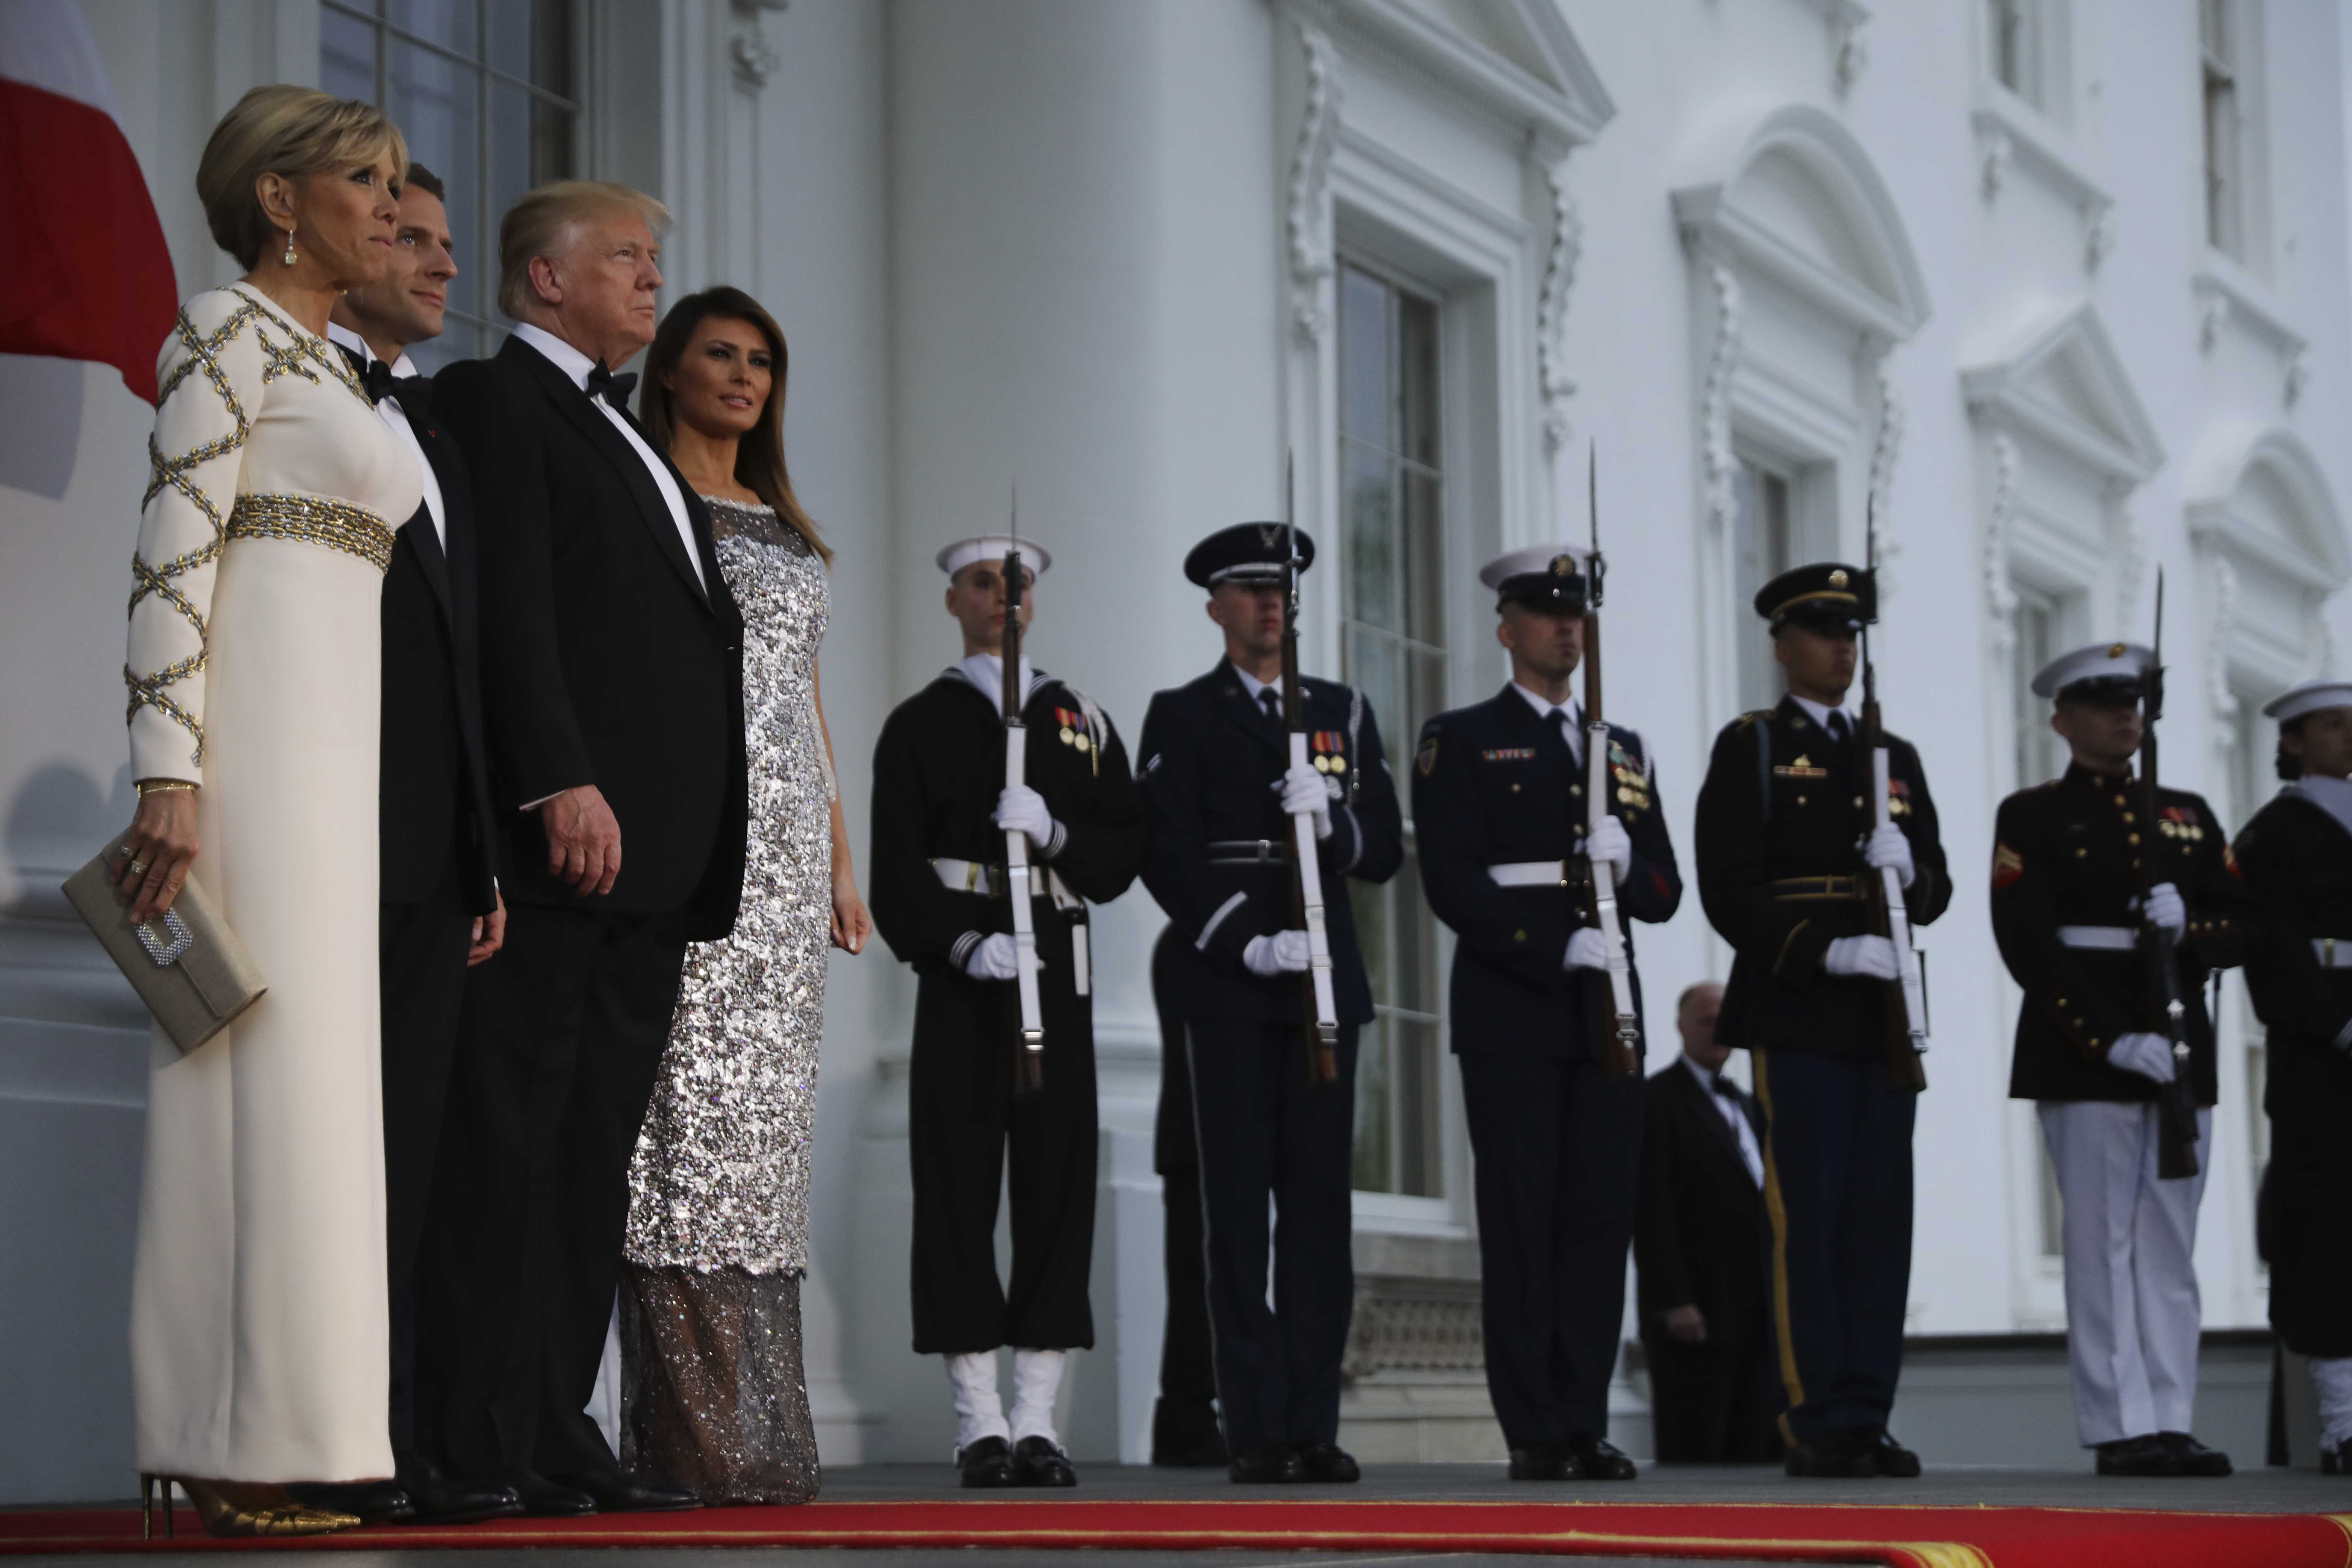 United States President Donald Trump and first lady Melania Trump welcome French President Emmanuel Macron and his wife Brigitte for a State Dinner at the White House in Washington